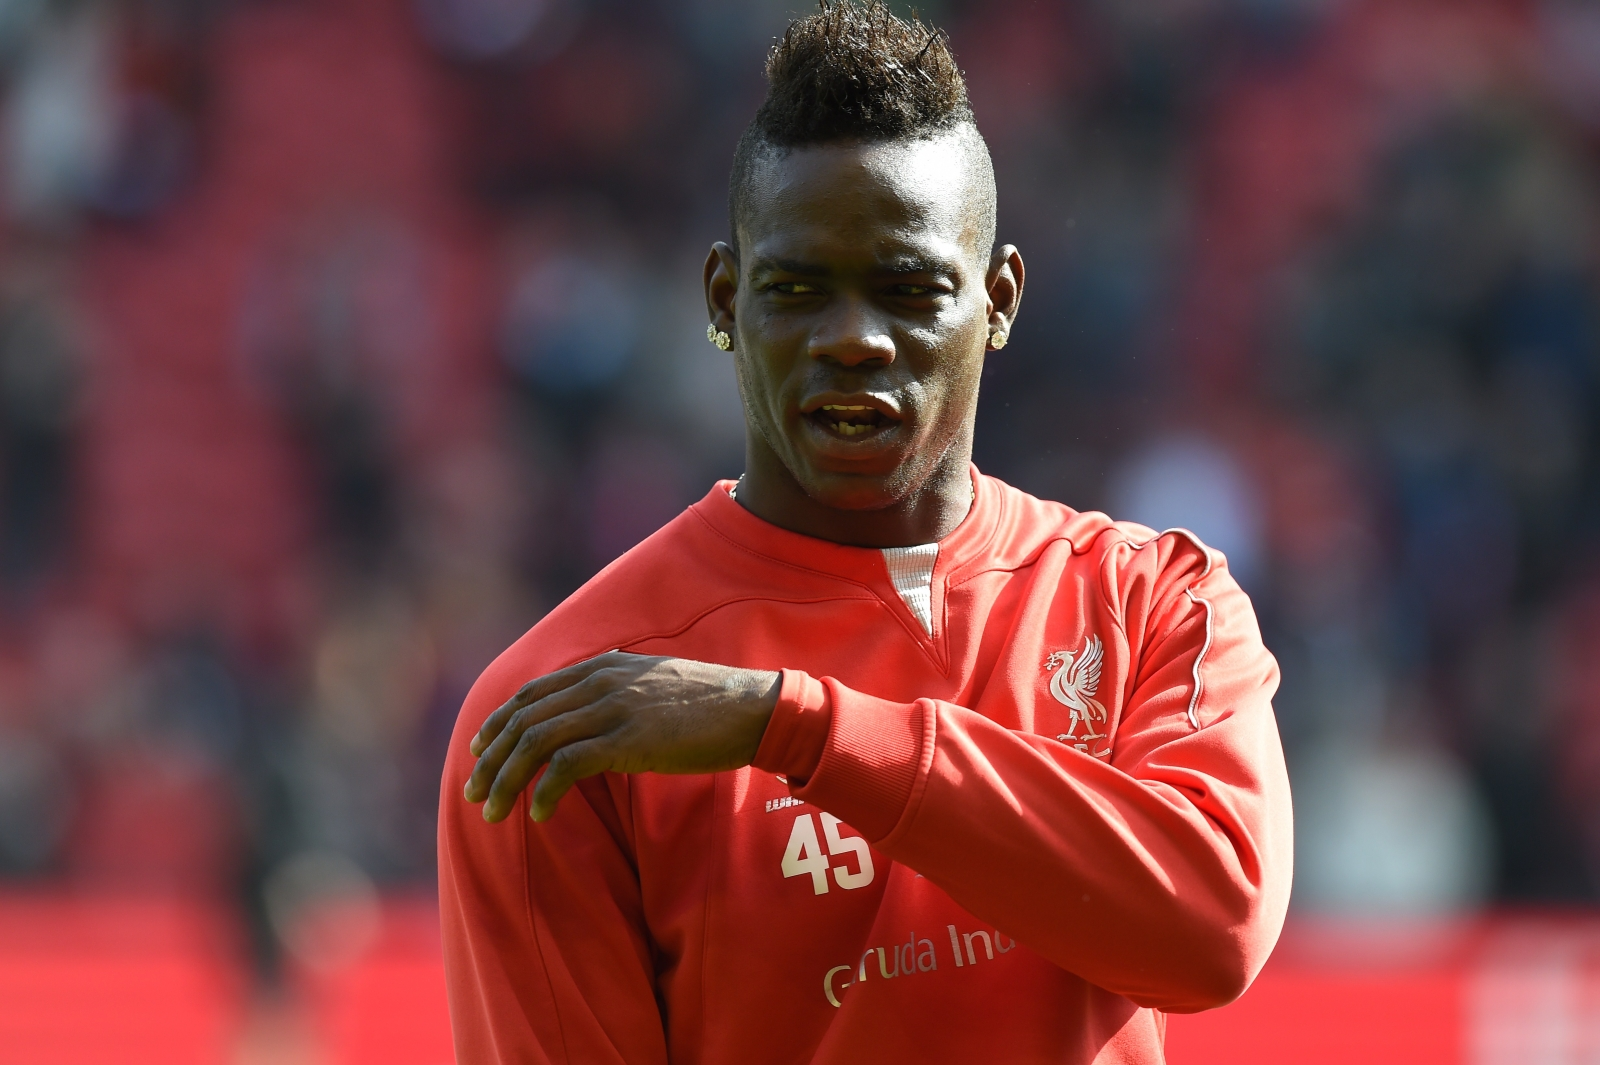 mario balotelli ends liverpool misery with England are hoping for a first major trophy in 50 years at euro 2016, and we take a look at how liverpool's players have done at major tournaments for the three.